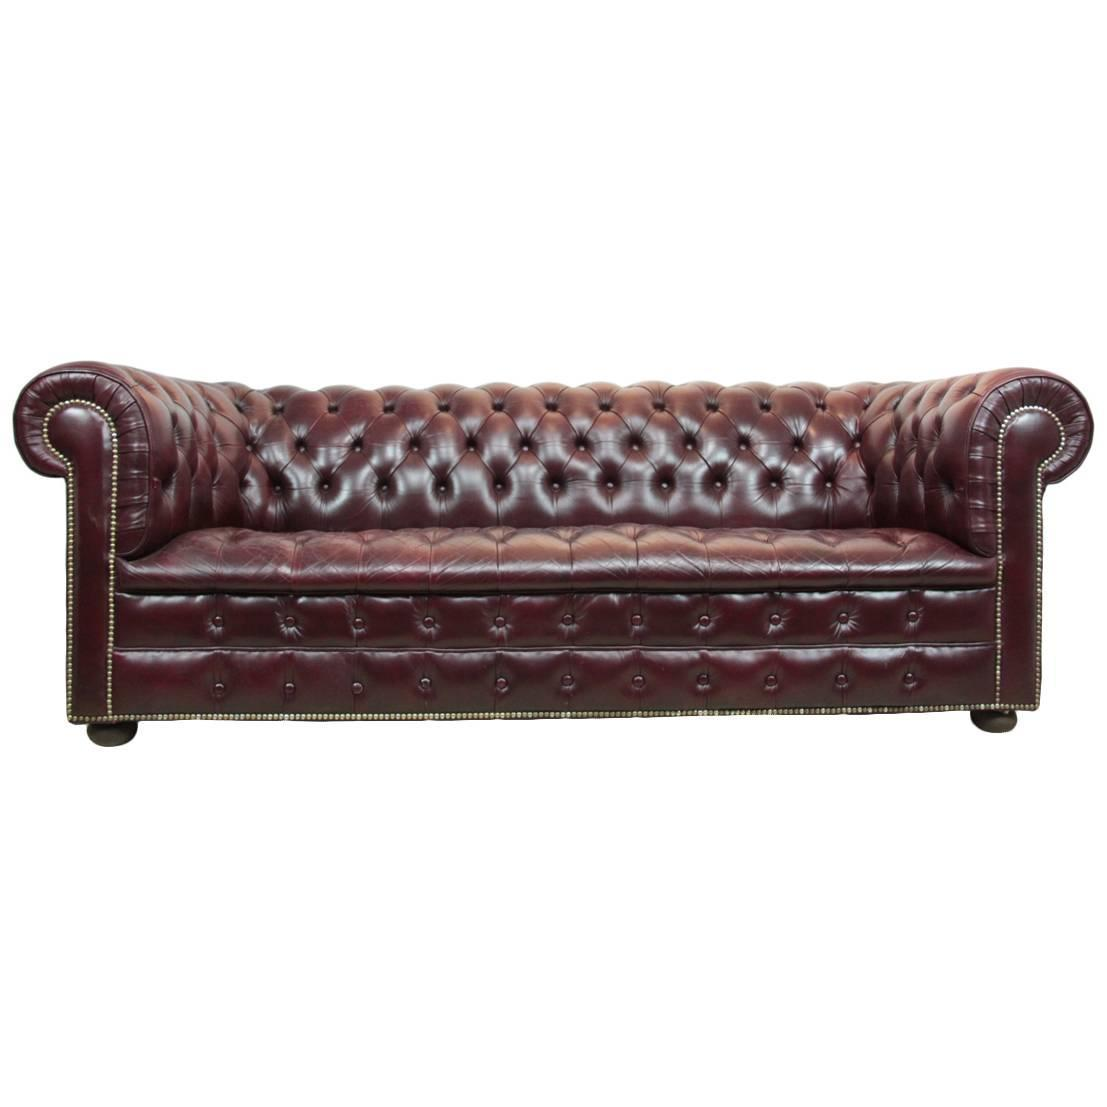 Vintage leather chesterfield sofa in red at 1stdibs Leather chesterfield loveseat